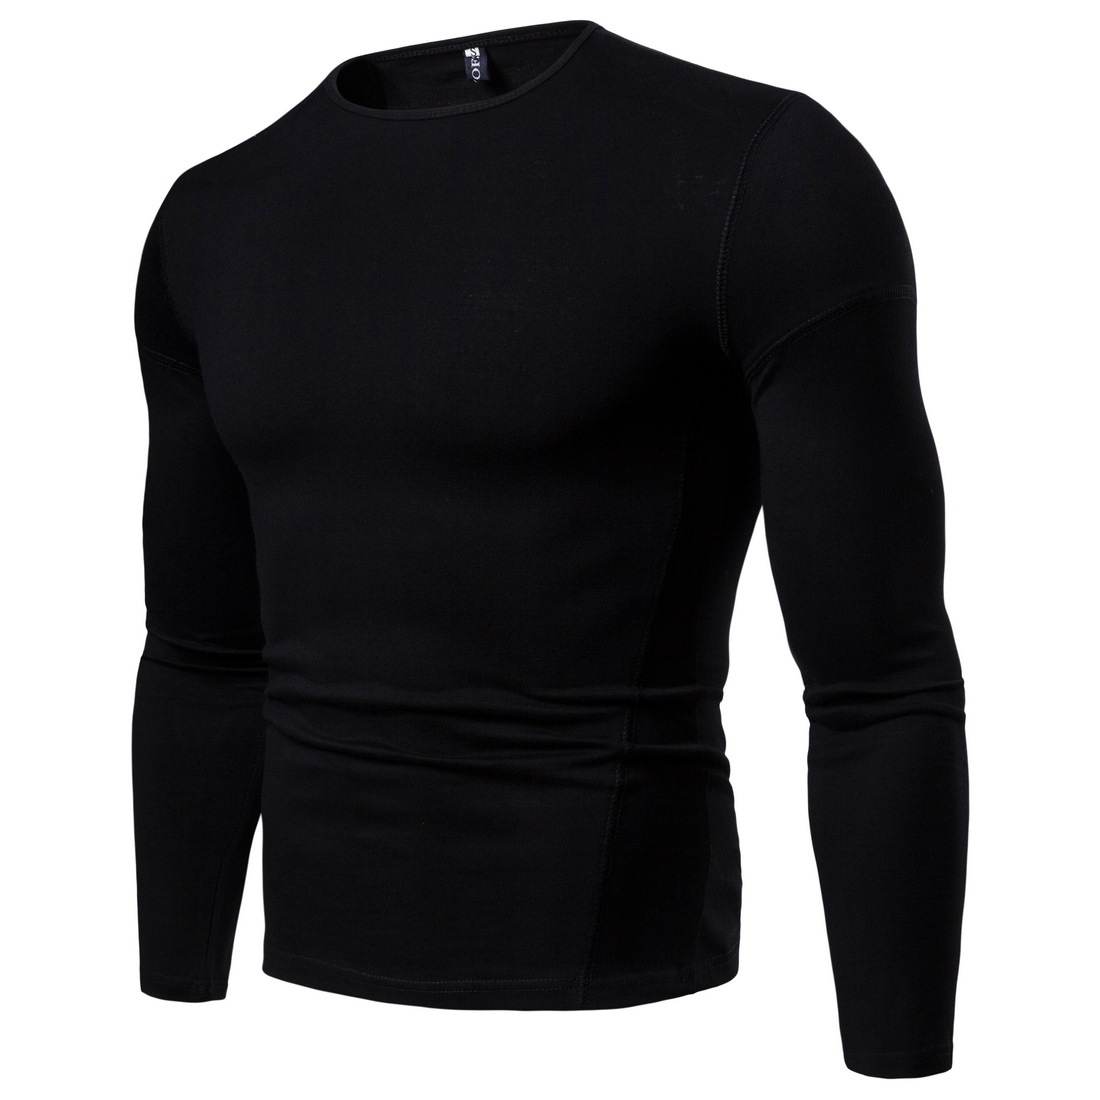 Men 39 s Long sleeved T shirt Solid Color European Code Cotton T shirt Round Neck Wild Shirt Bottoming Shirt YT026 in T Shirts from Men 39 s Clothing